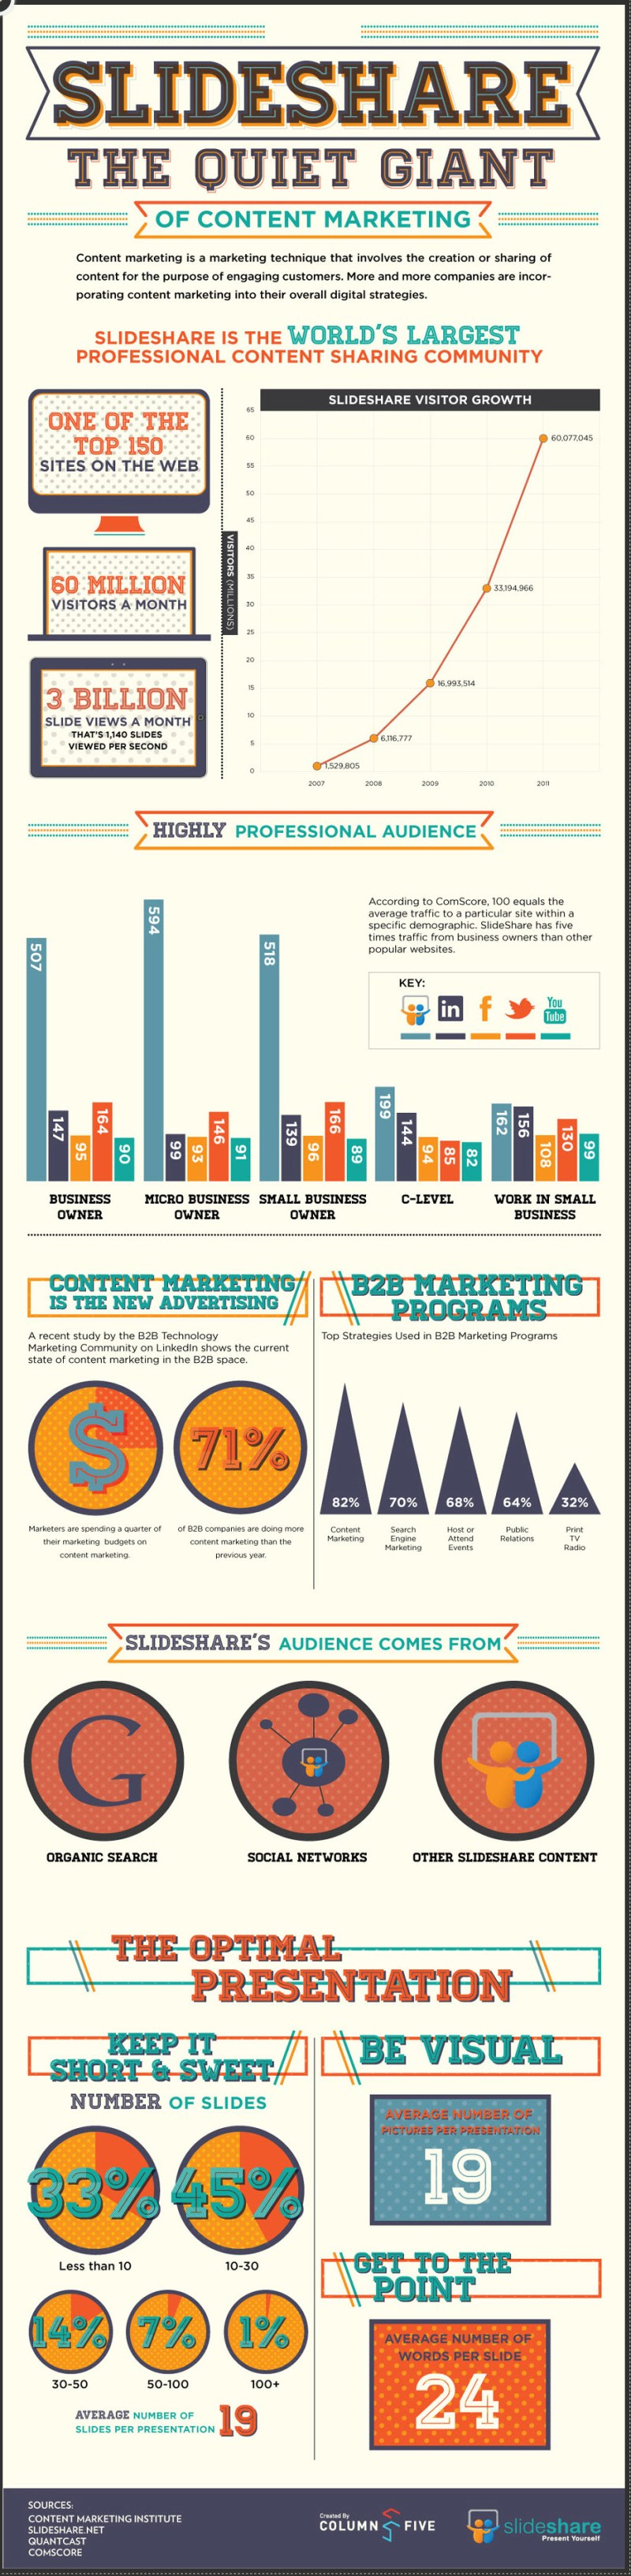 Content Marketing On SlideShare [INFOGRAPHIC]